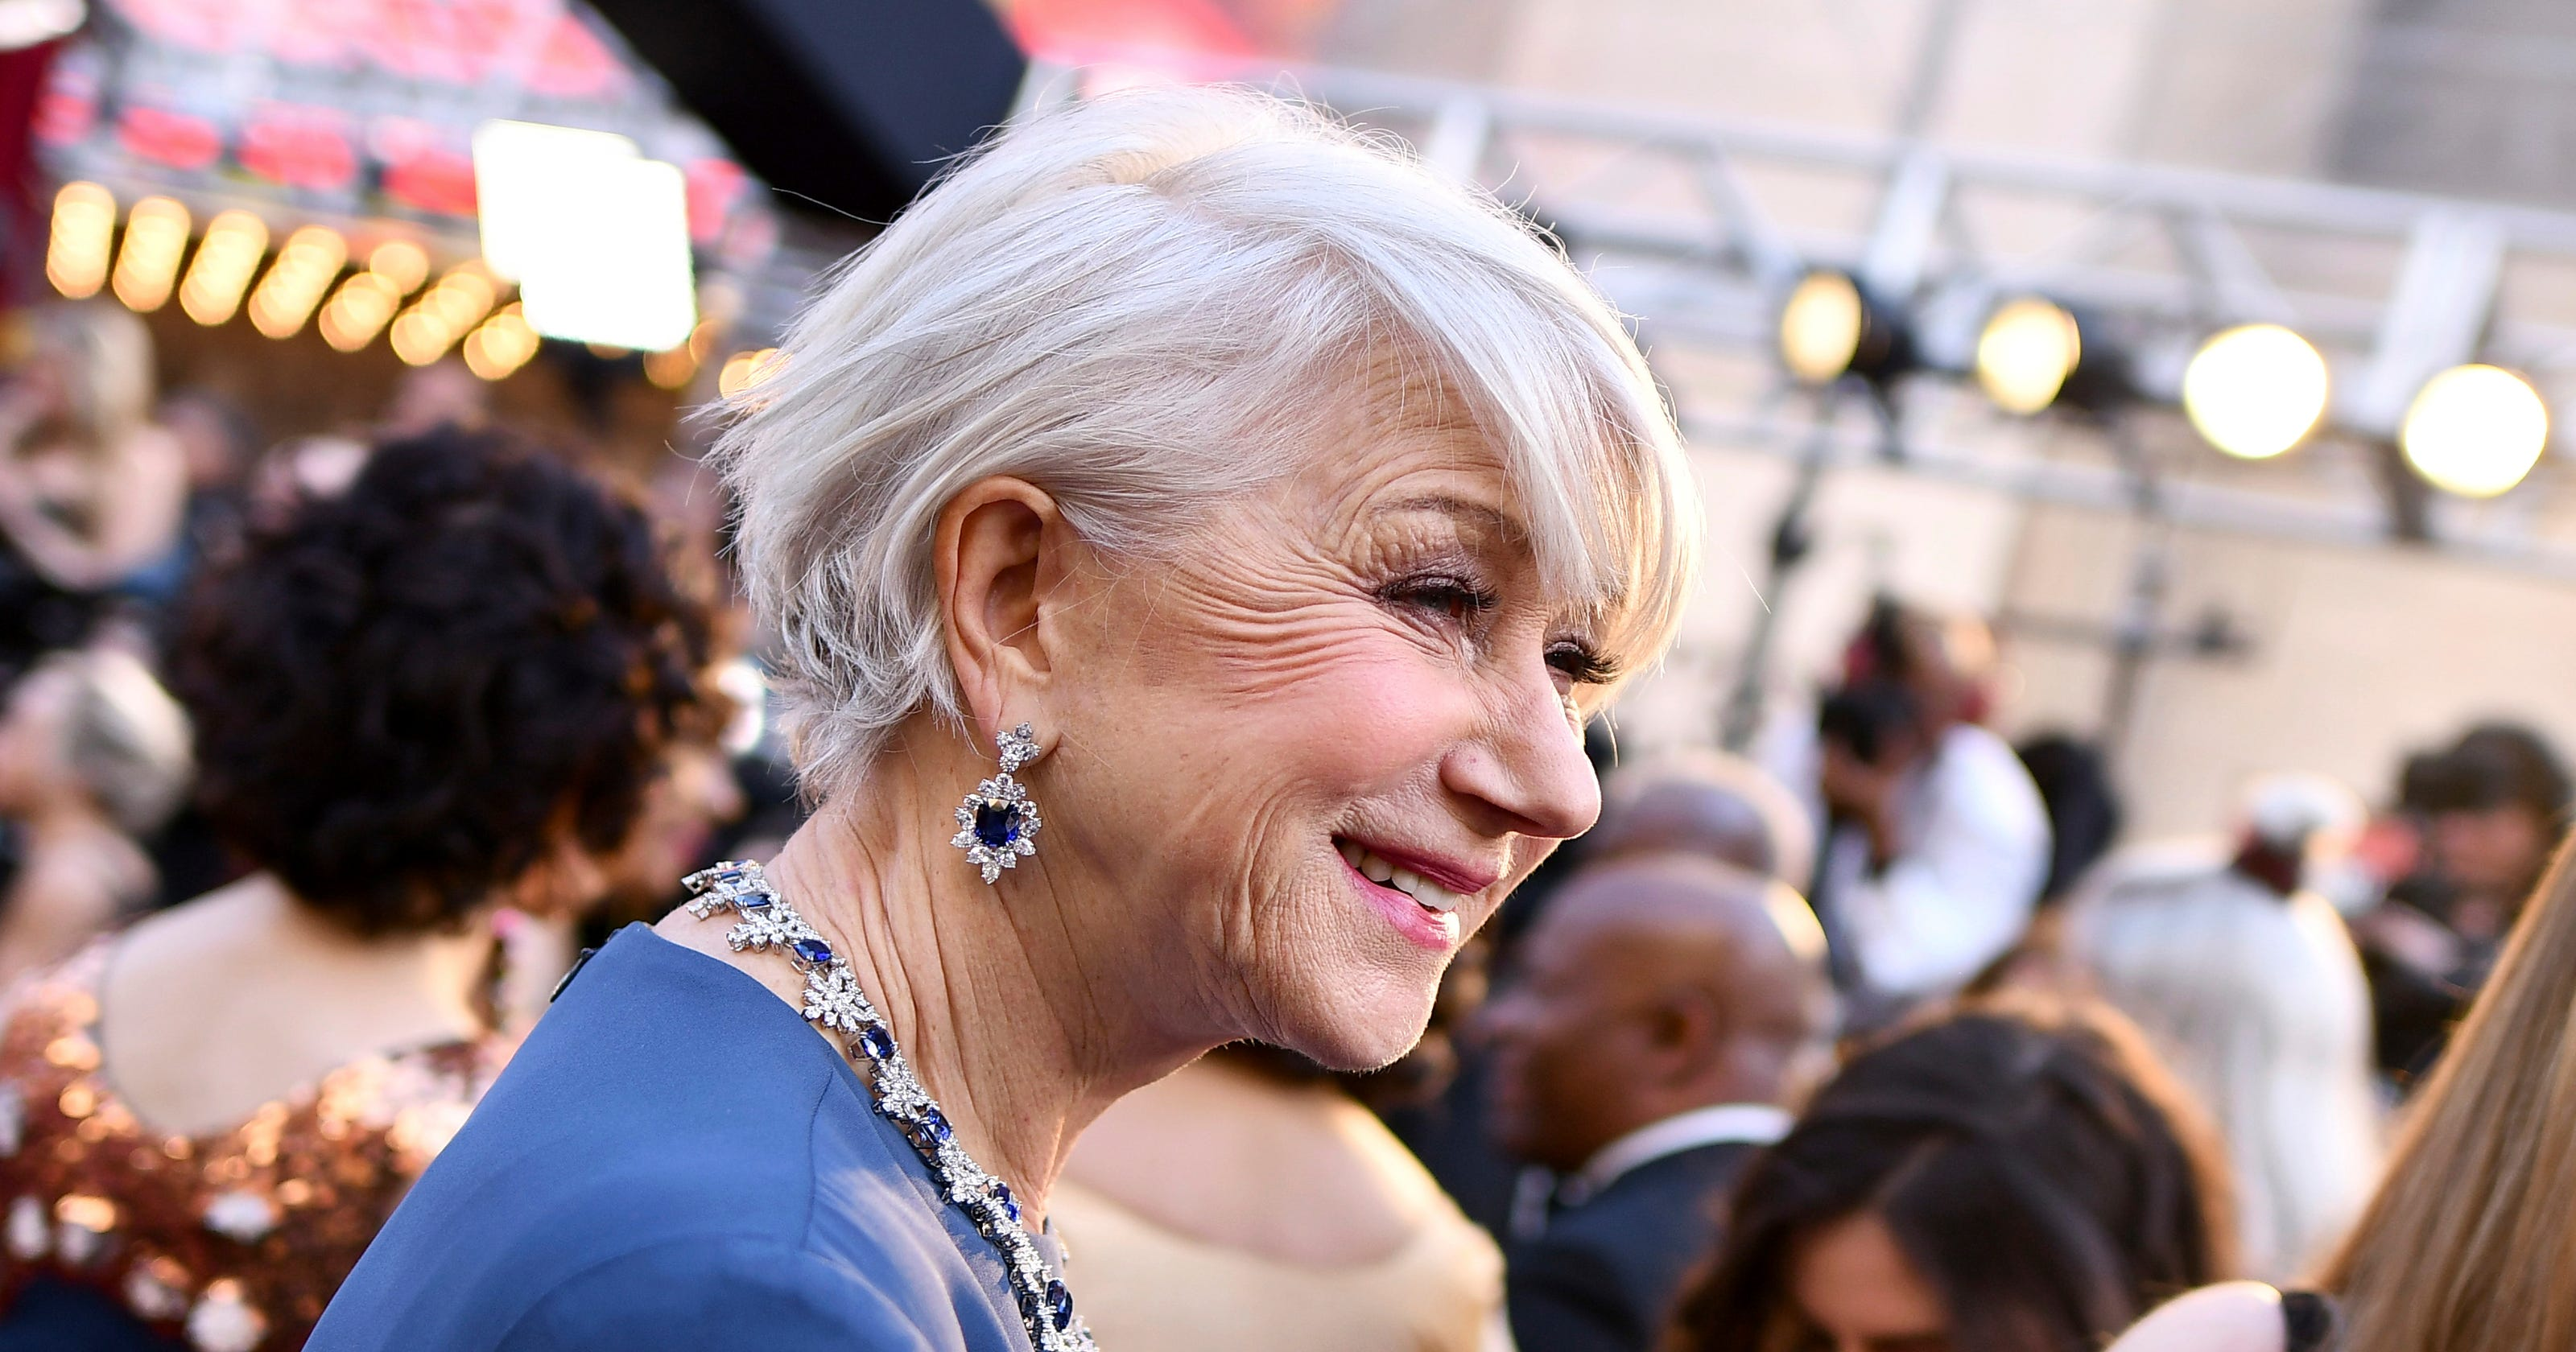 Helen Mirren From Oscars To The Leisure Seeker Talking With An Icon